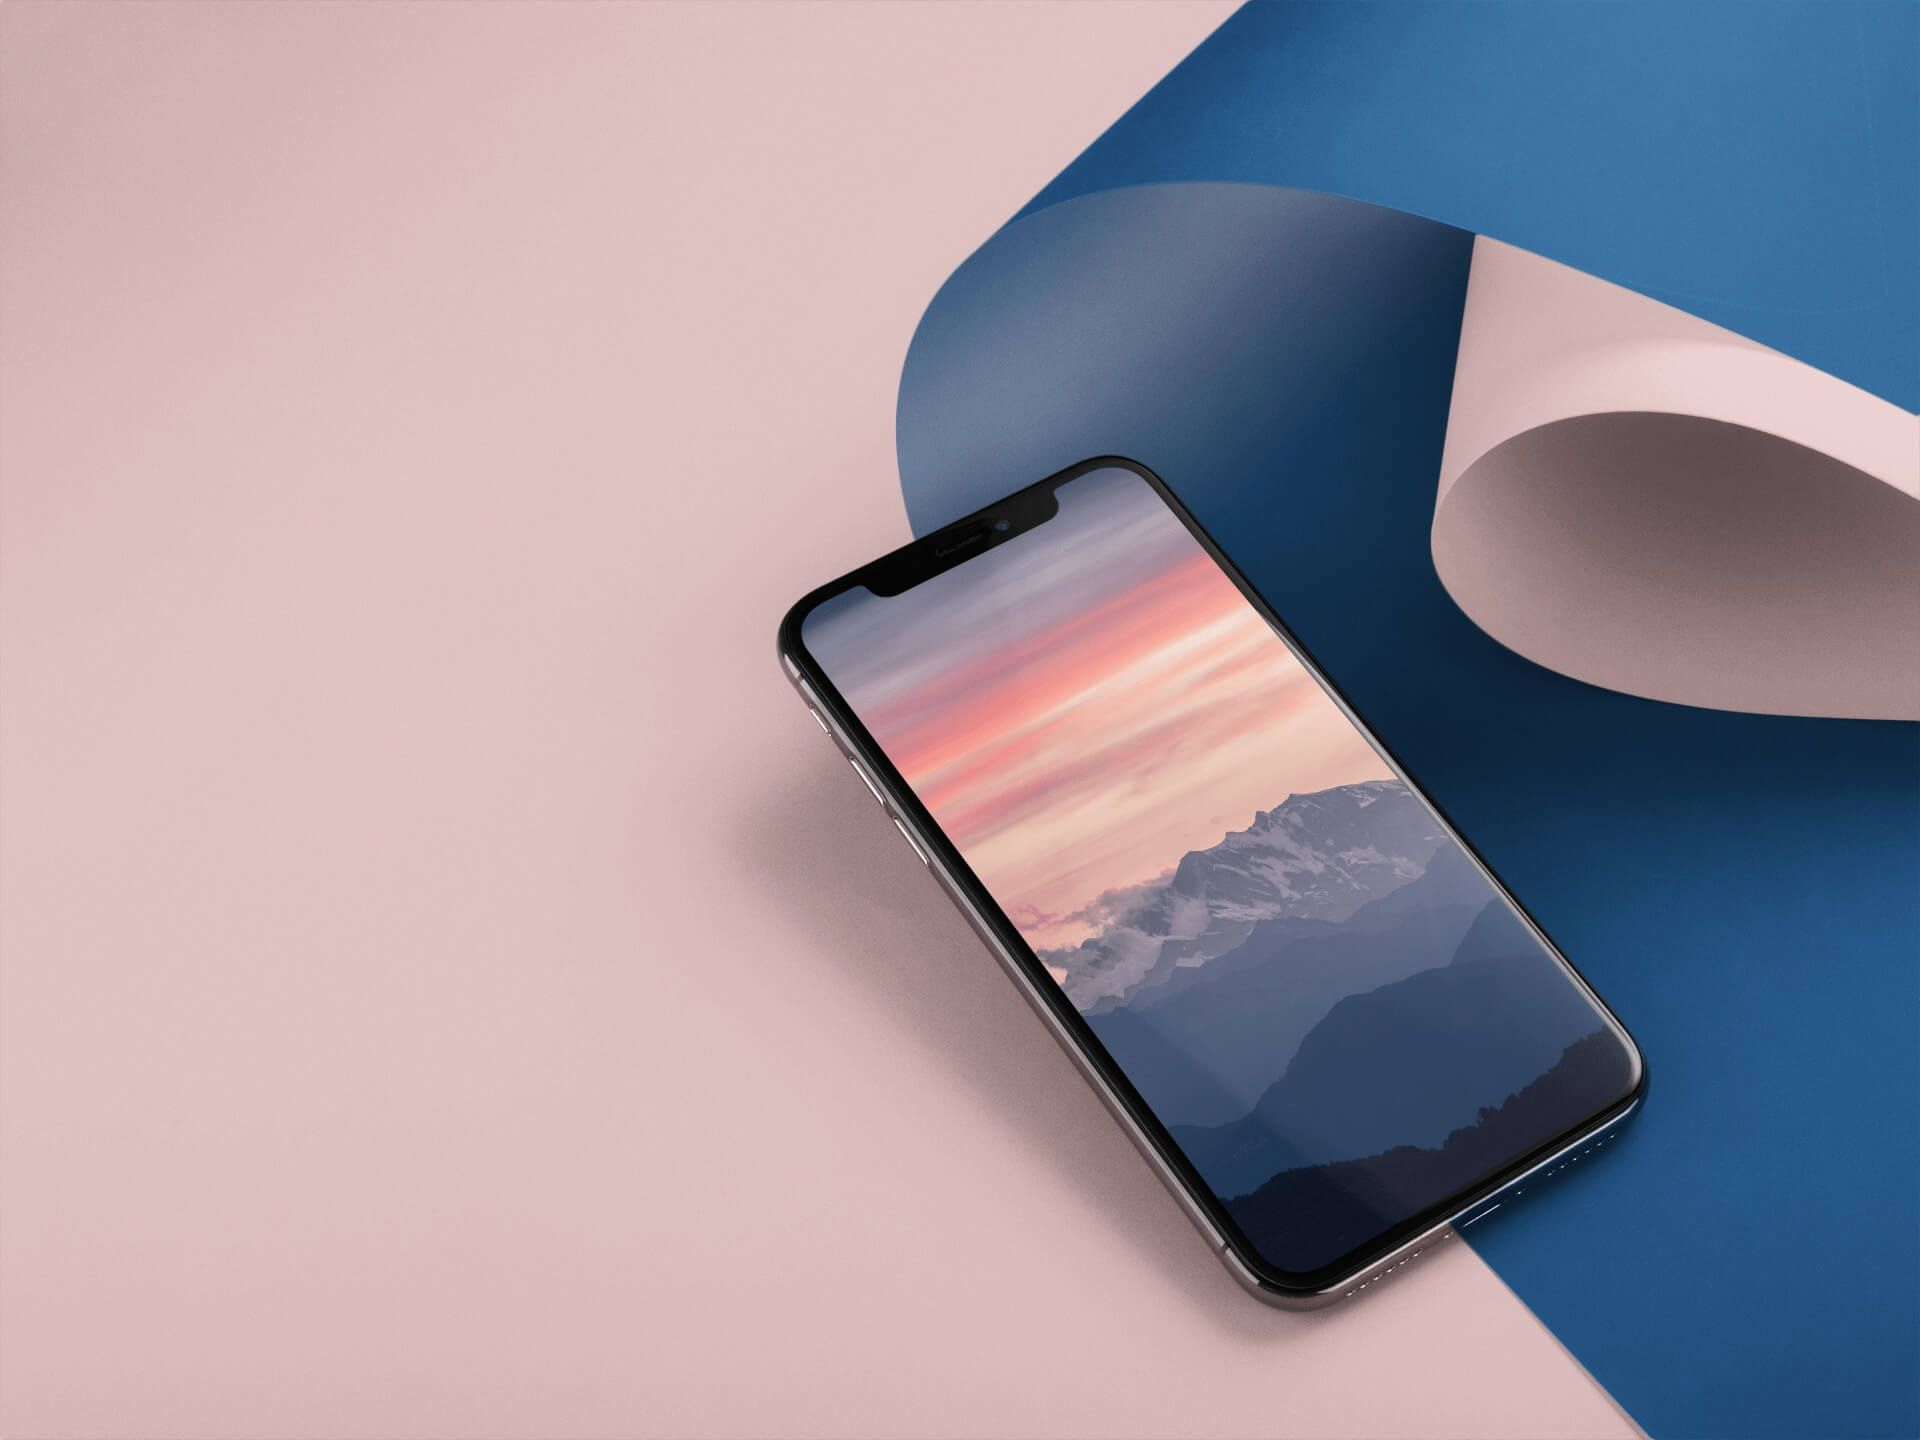 Iphone Best Wallpapers Free Download In 2020 Best Iphone Wallpapers Iphone Wallpaper Iphone Wallpaper Pattern